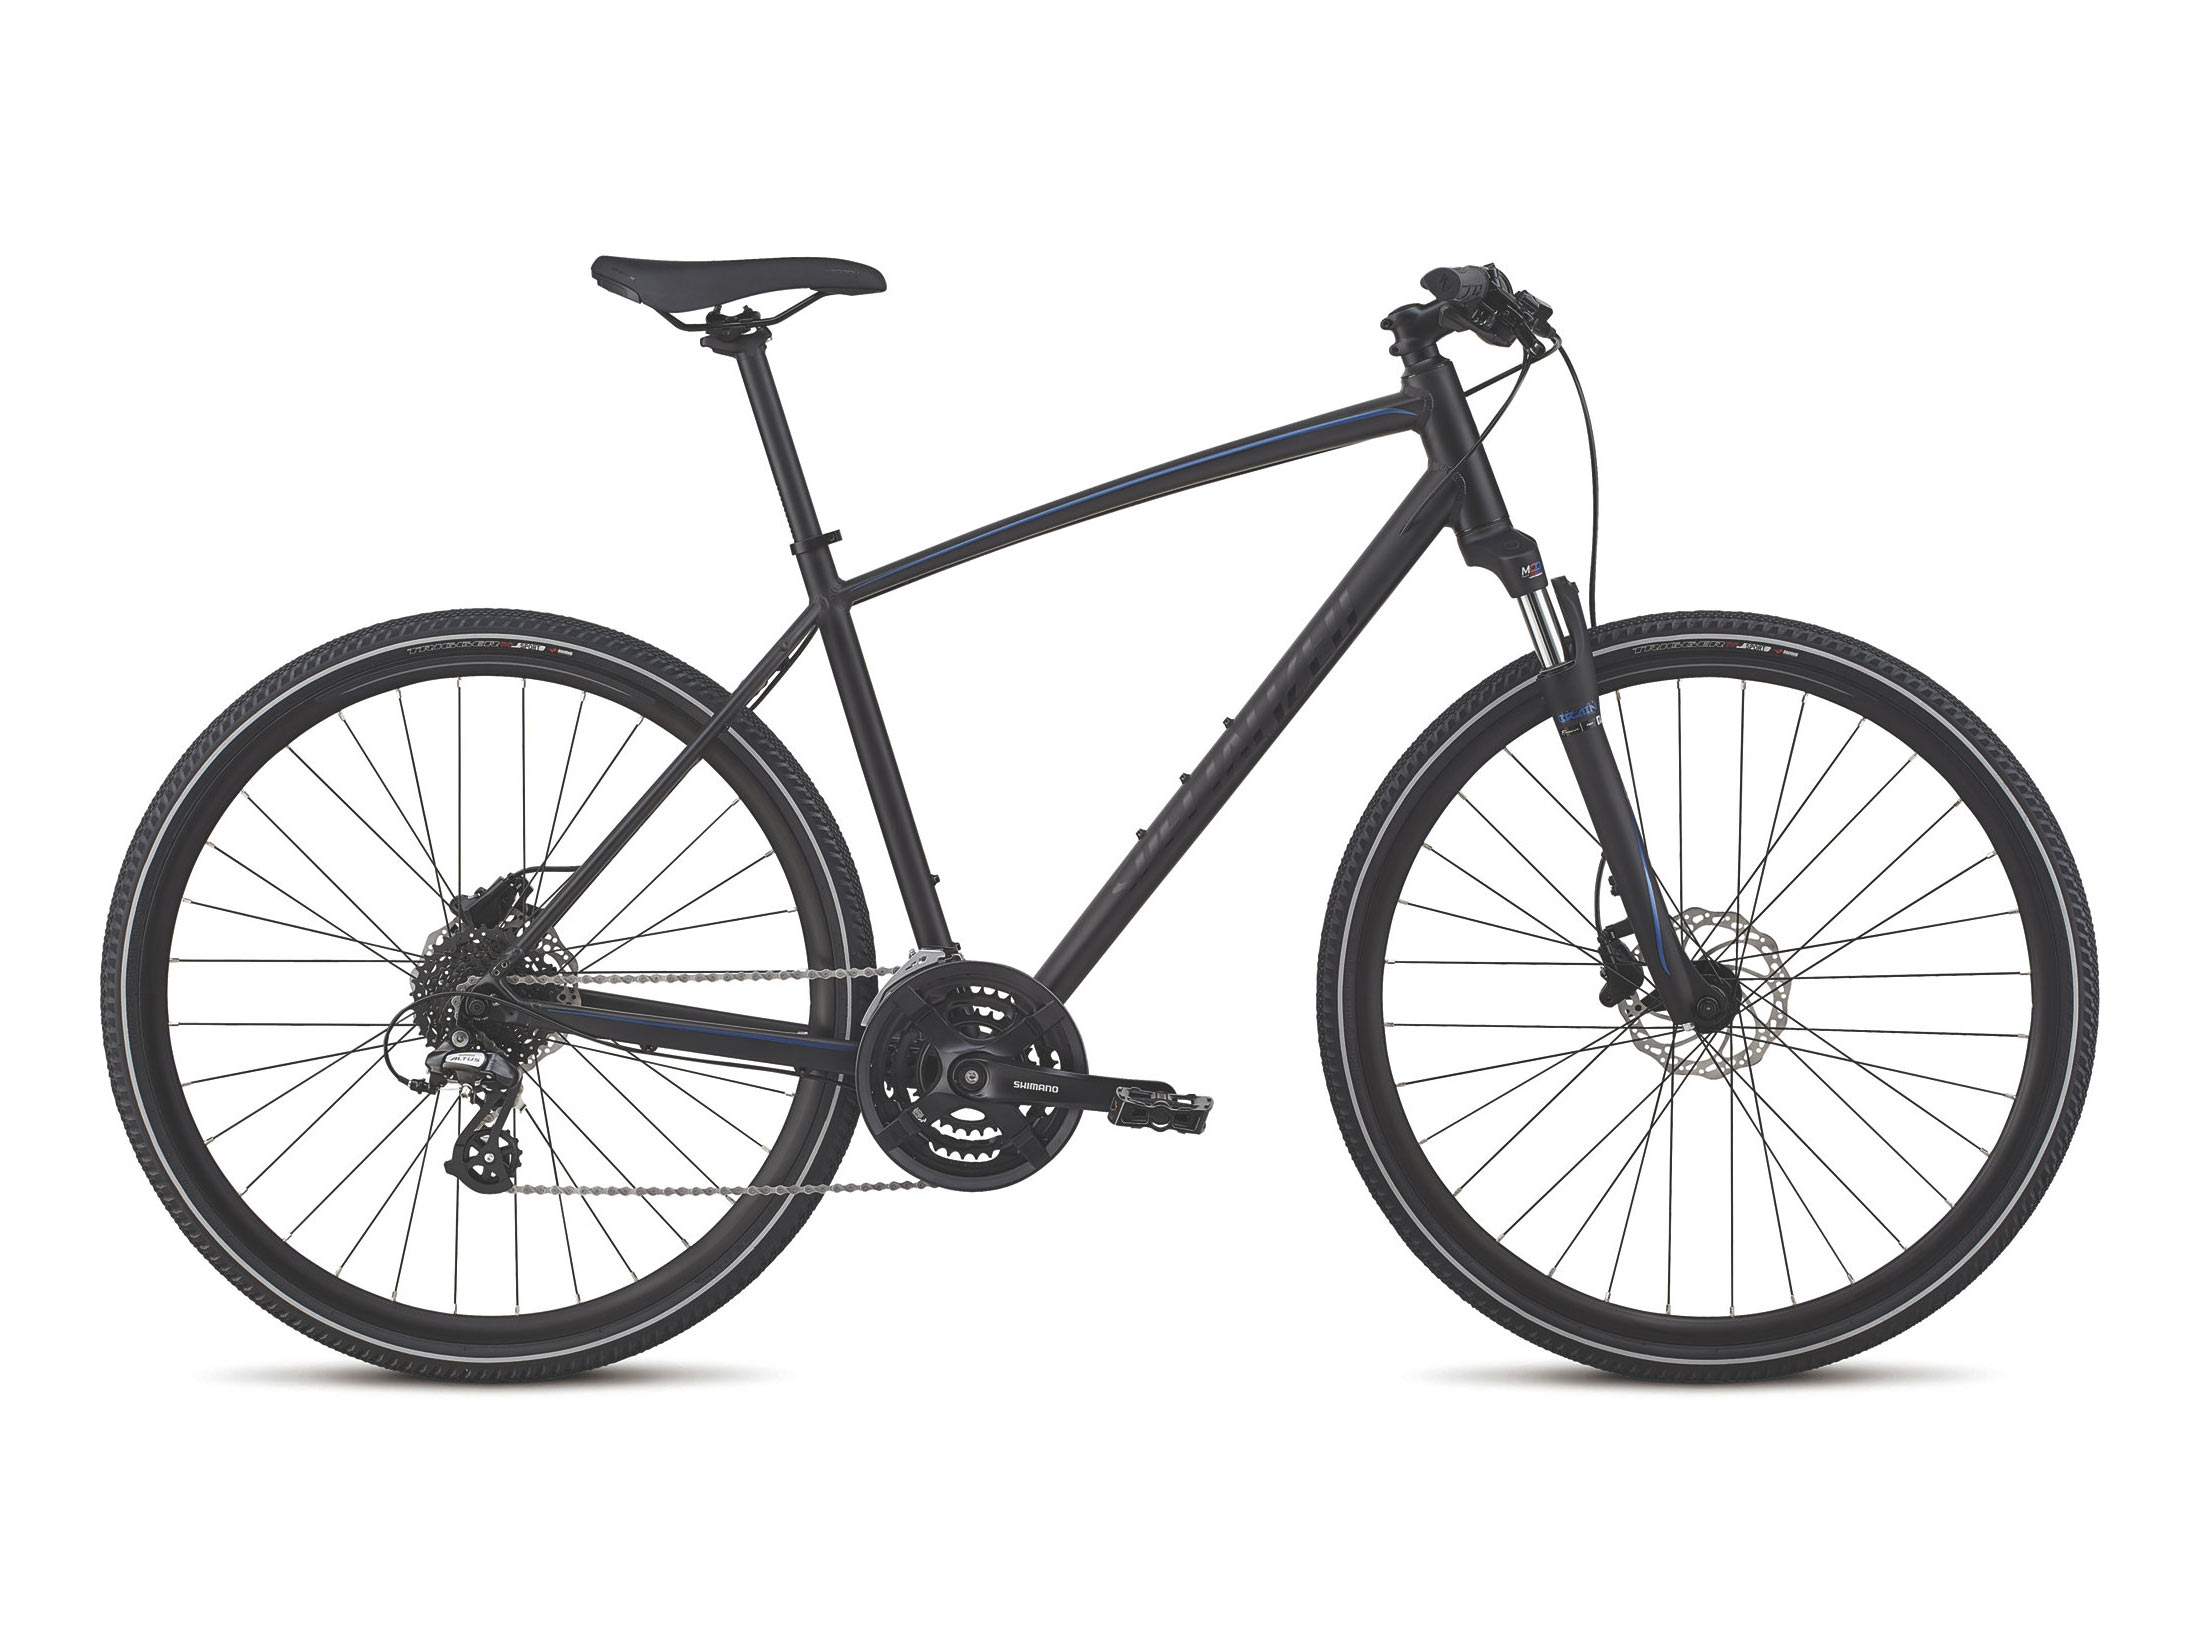 Ποδήλατο Specialized CrossTrail - Hydraulic Disc